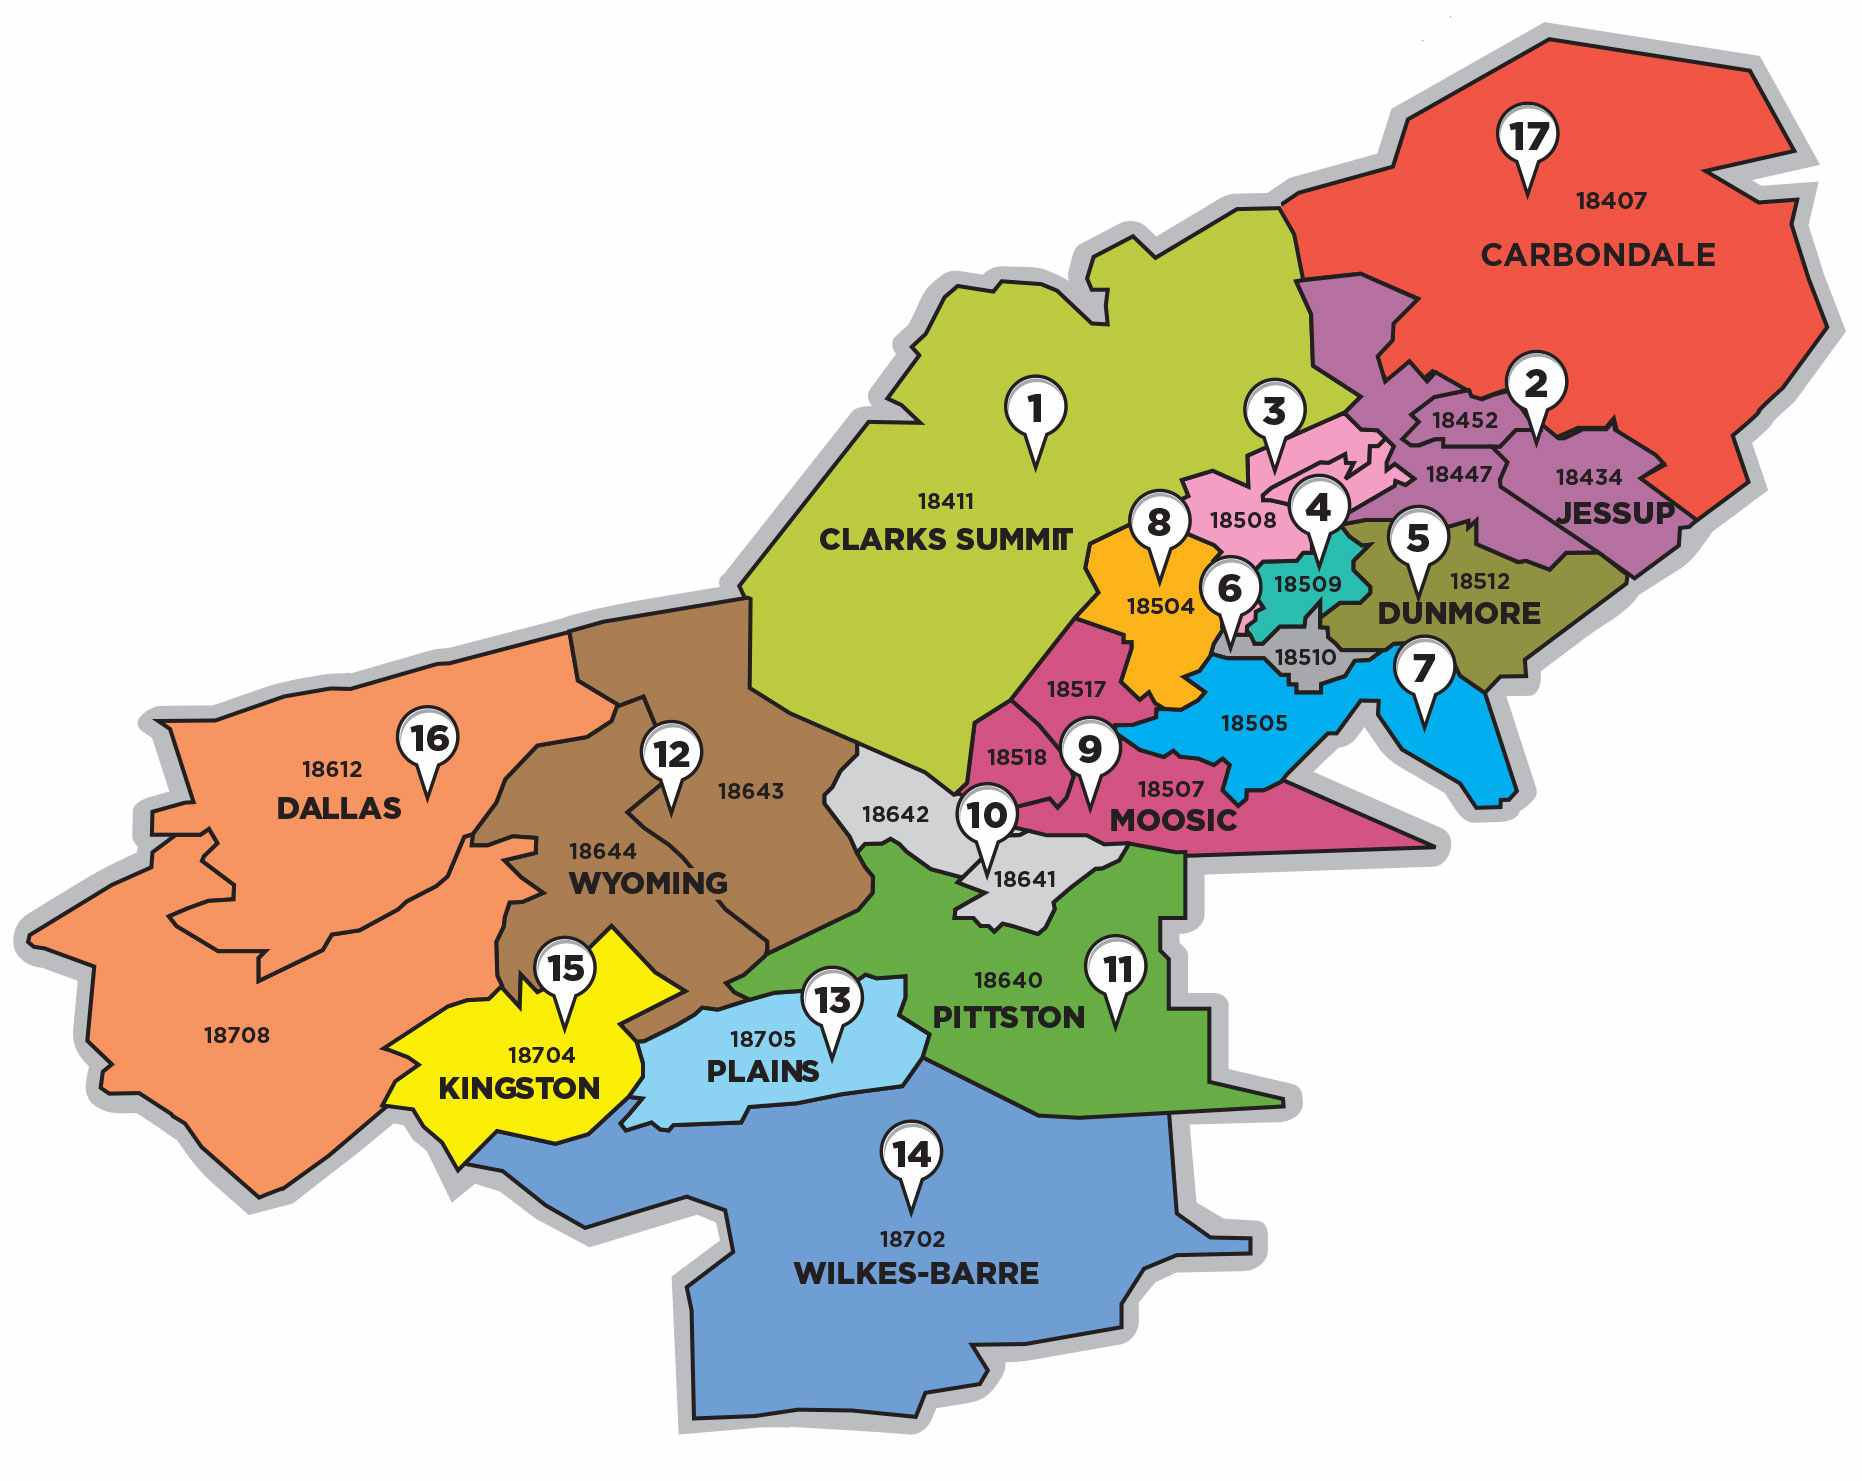 Coverage Map | Largest Advertising Circulation From Carbondale to Shavertown!